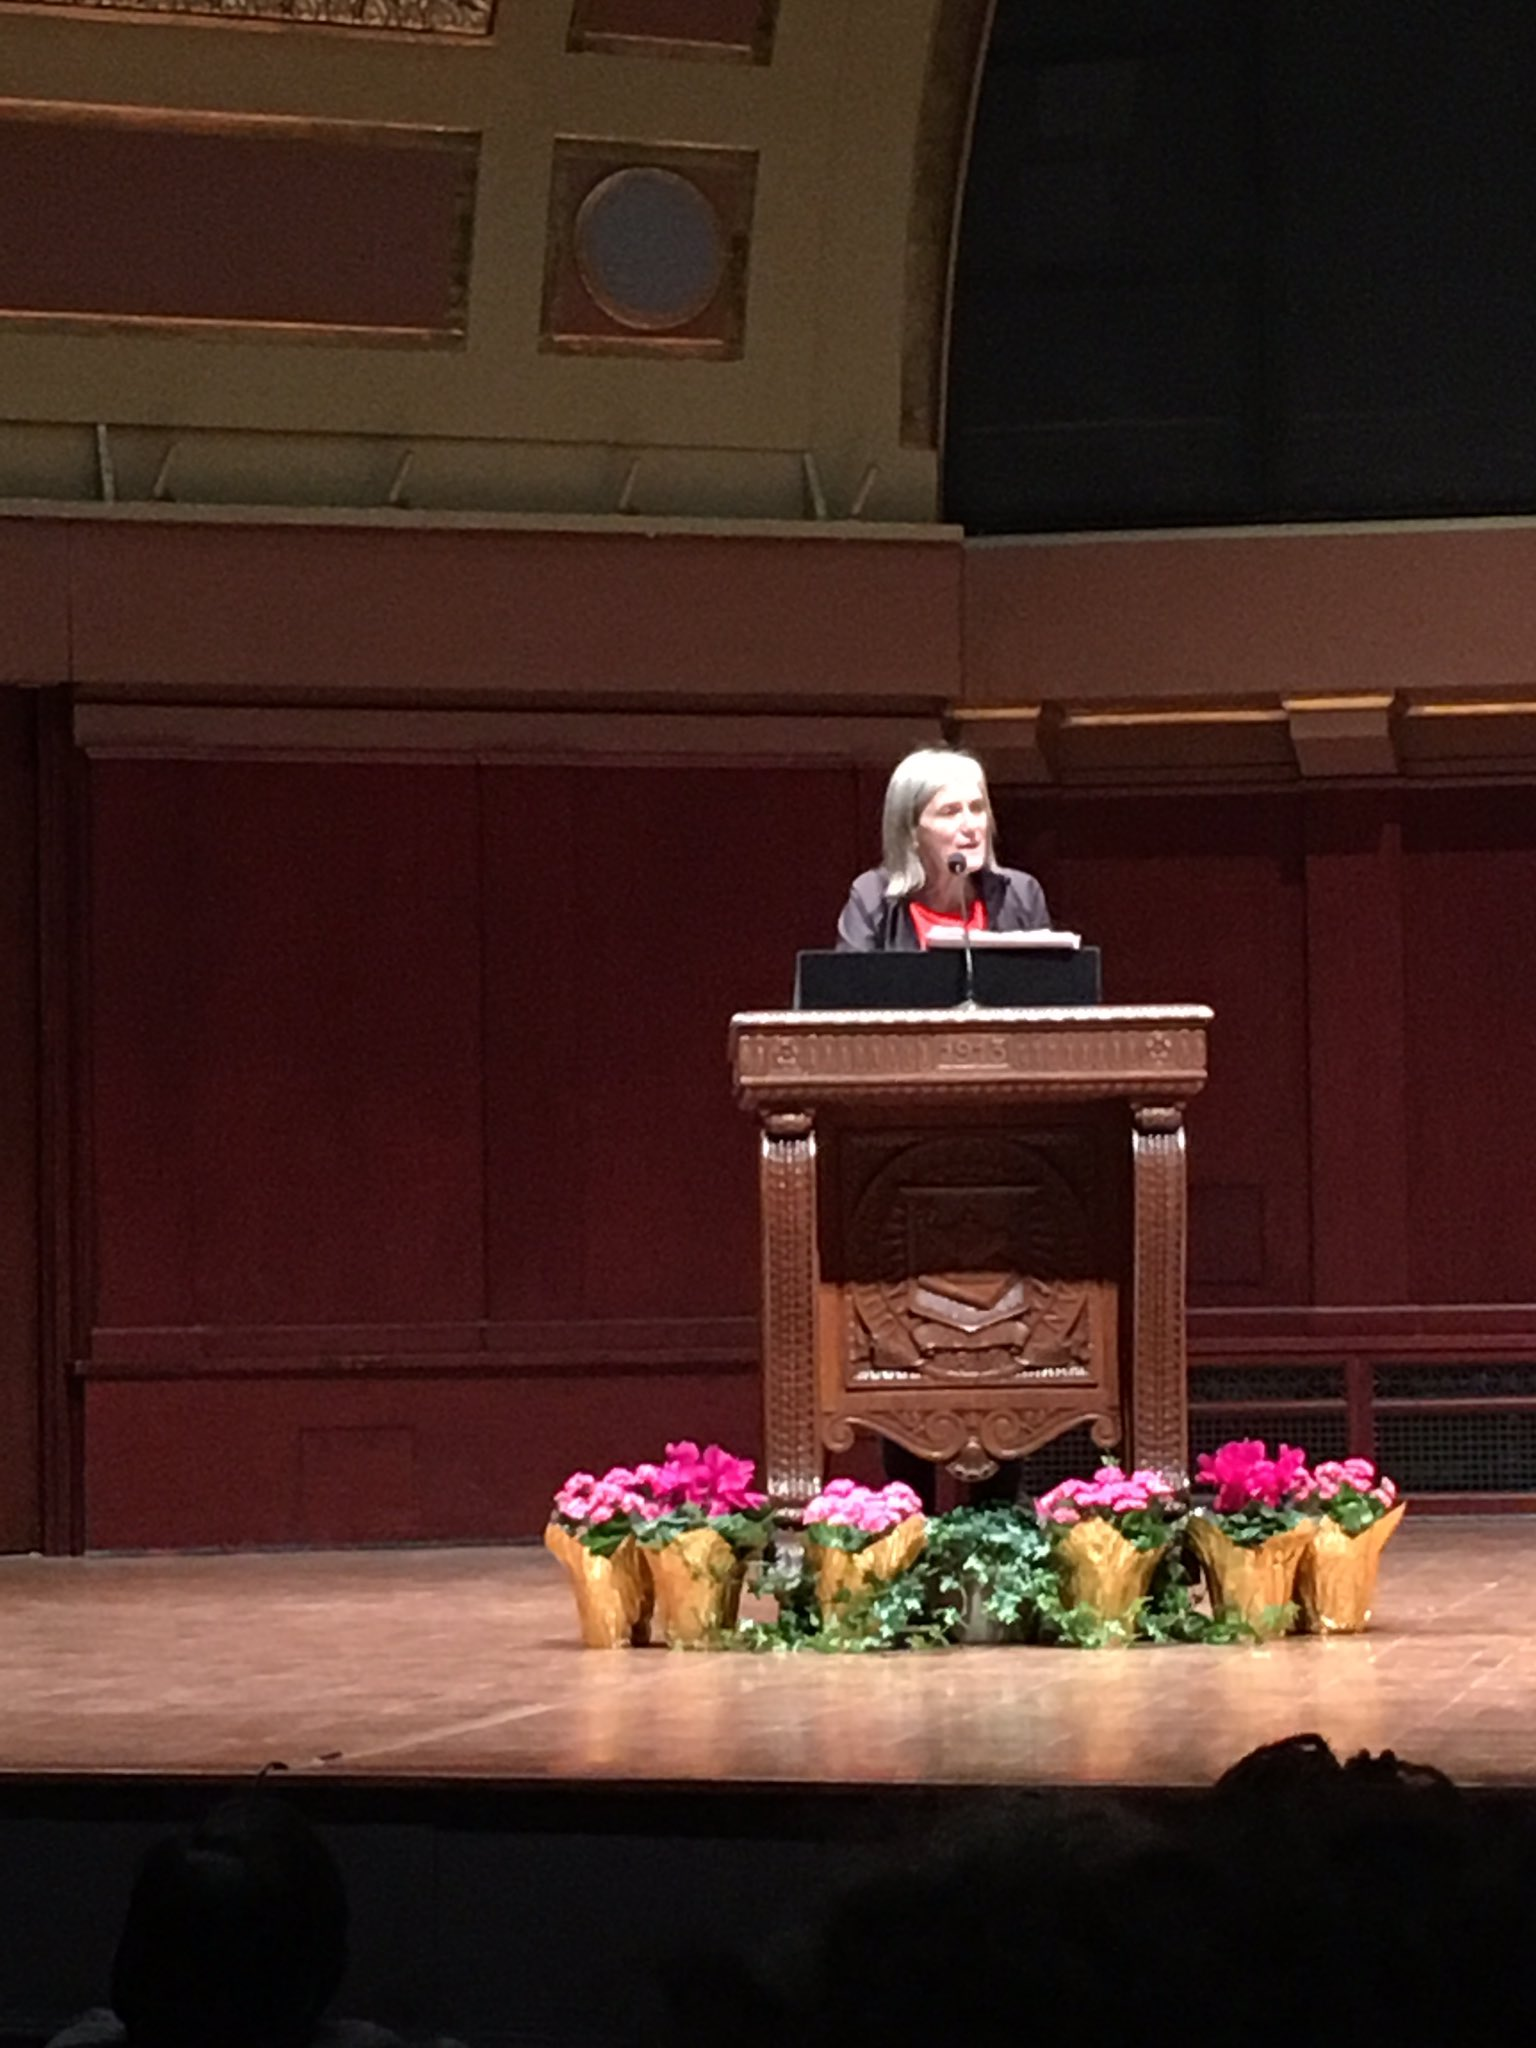 .@democracynow's Amy Goodman takes the stage in advance of her interview of @IssaRae. #UMichMLKDay2017 #UMichDEI https://t.co/VZNXdP4D2A